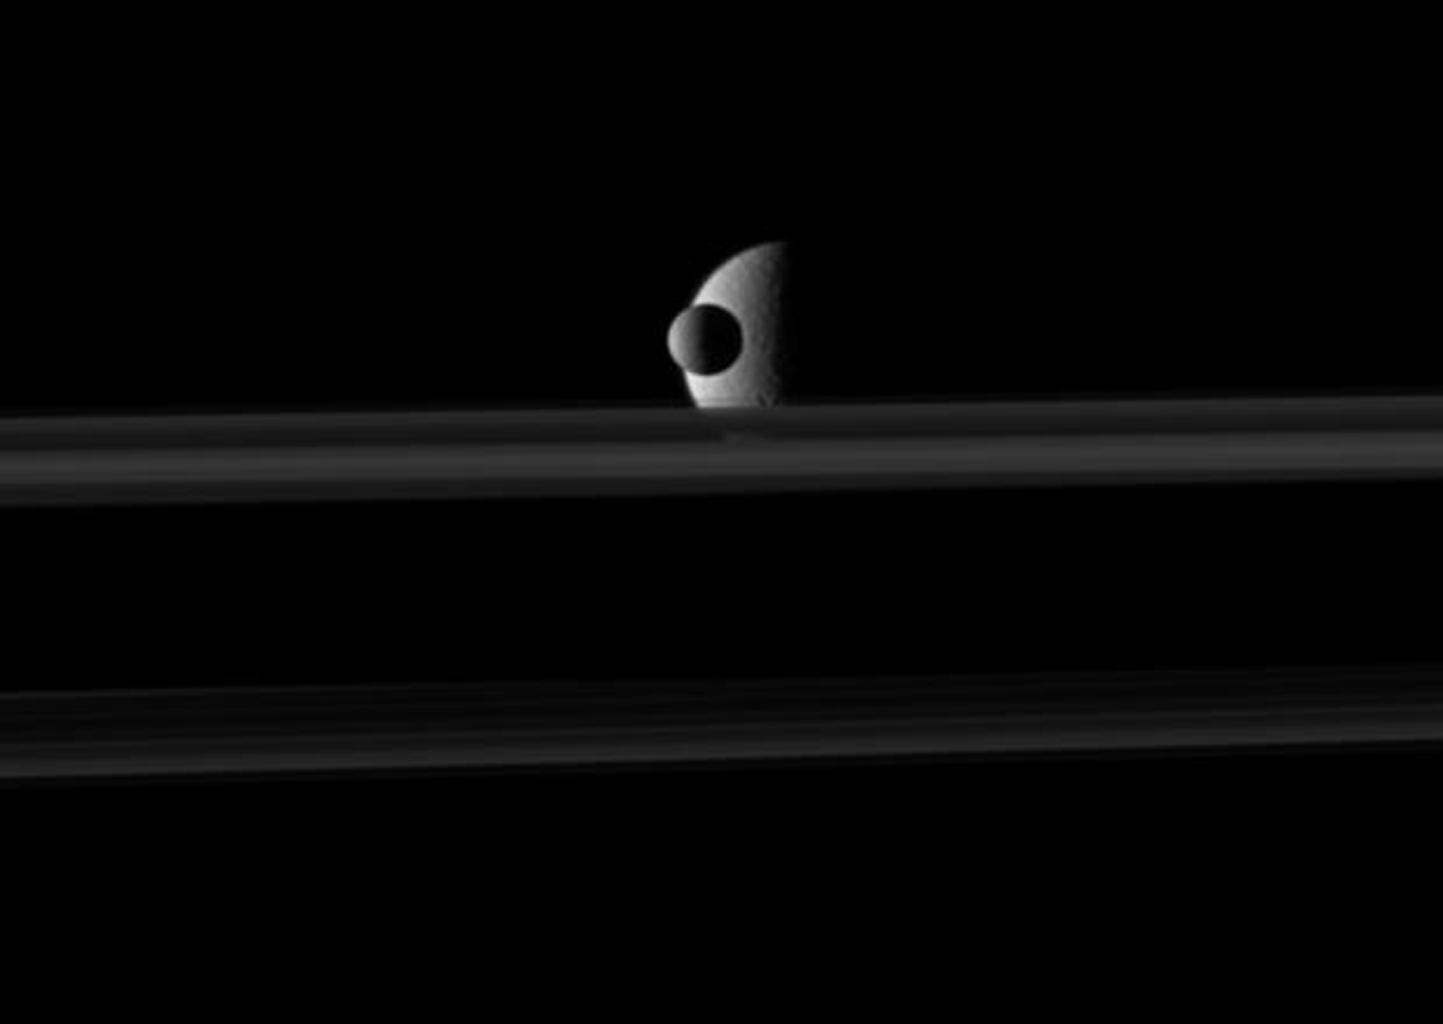 The small moon Mimas passes in front of the larger moon Rhea which is partly obscured by Saturn's rings in this image from NASA's Cassini spacecraft. Go to the Photojournal to view the animation.